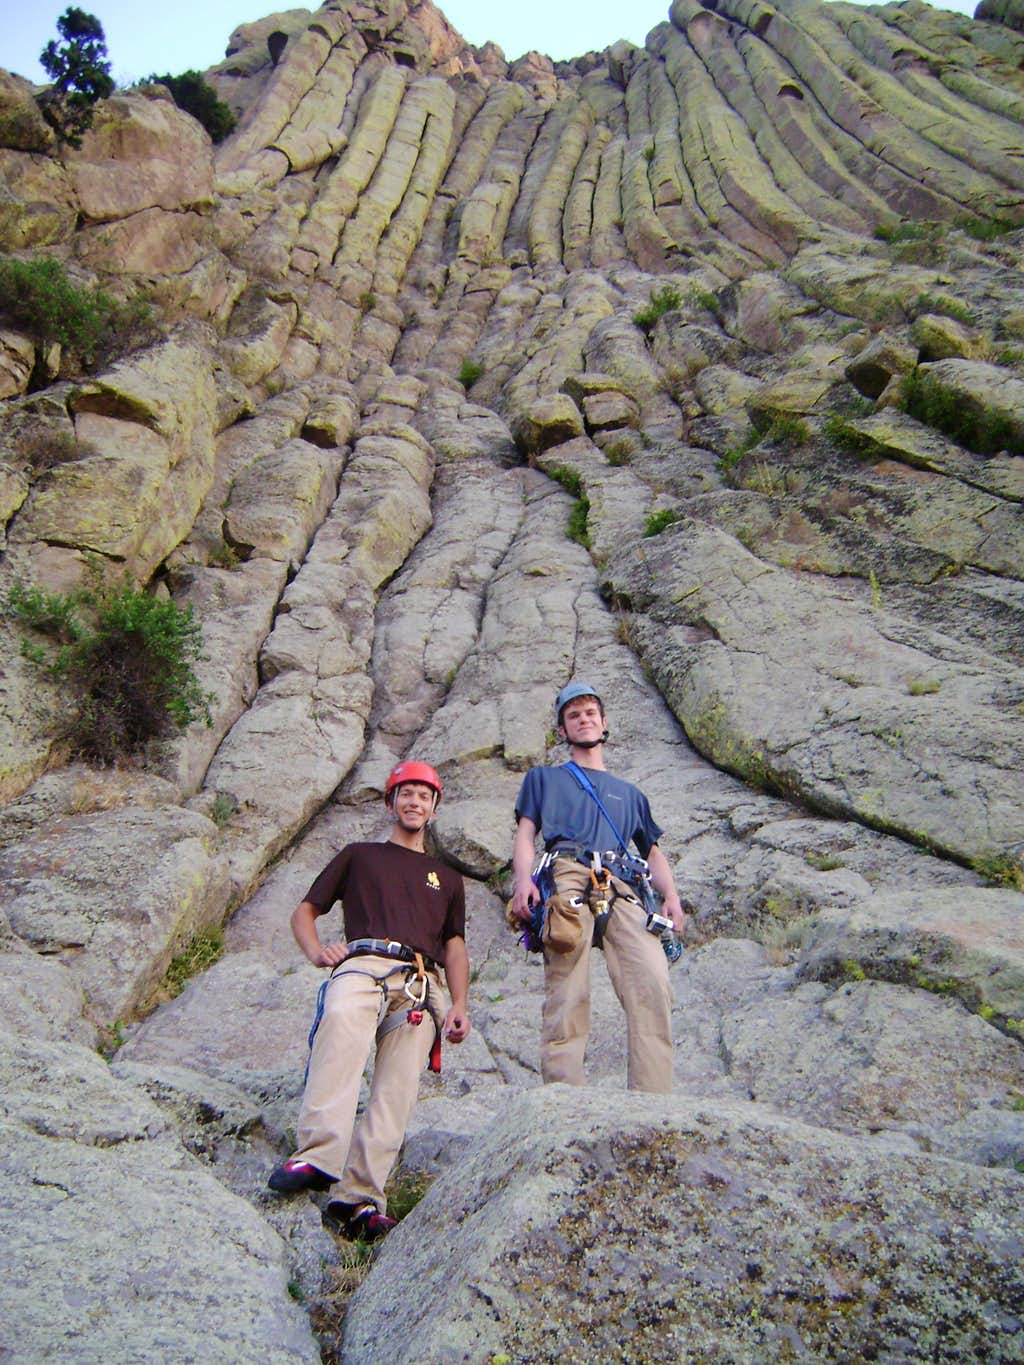 Myself and JD Sacklin at the base of the Durrance route.